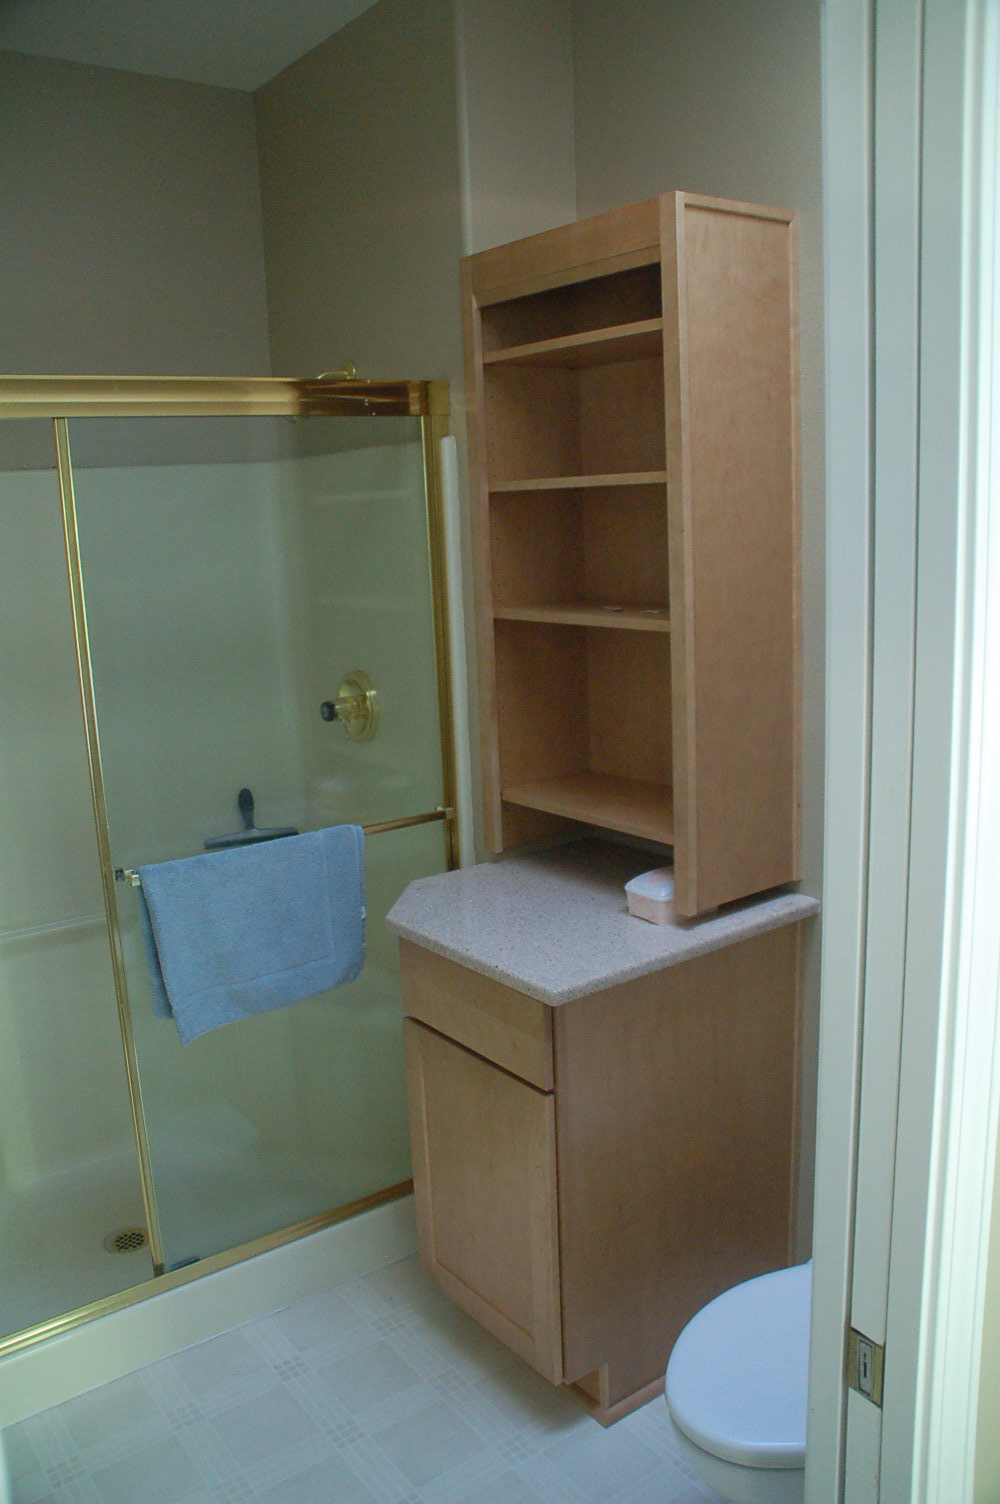 Bathroom Remodel Moving Plumbing : Living the dream bathroom remodel countertops and